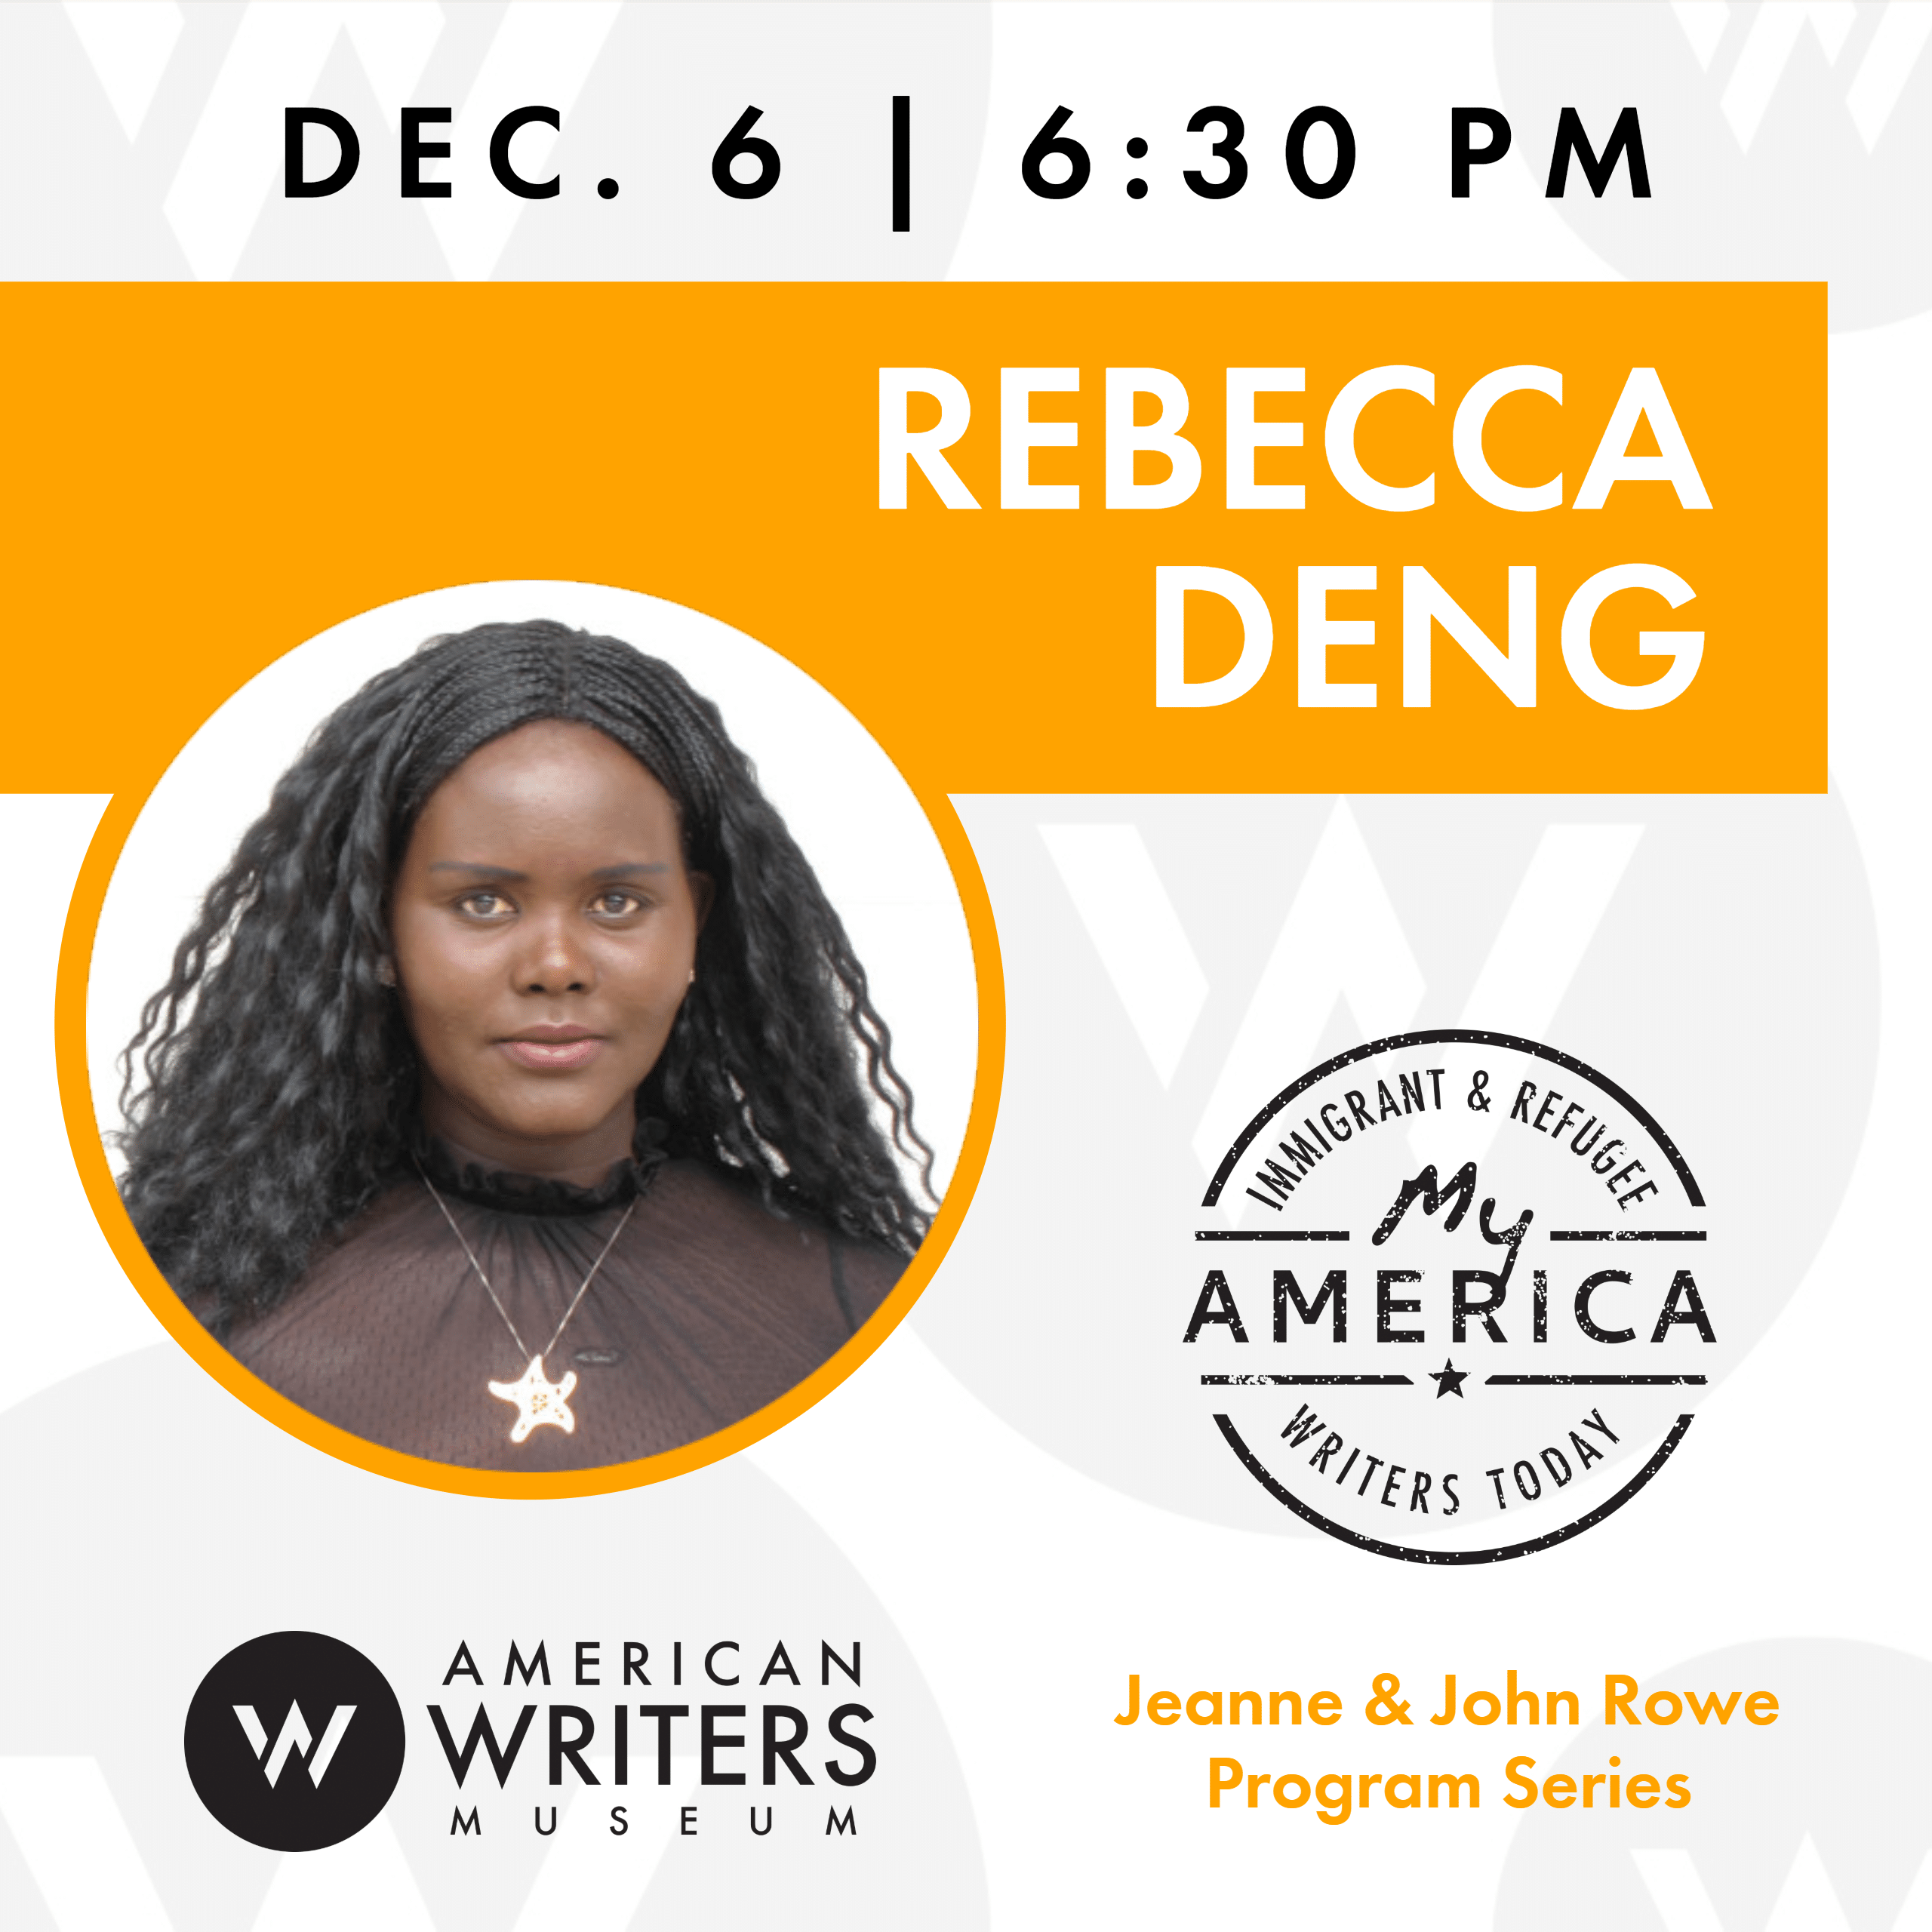 Rebecca Deng event at the American Writers Museum on December 6, 2019